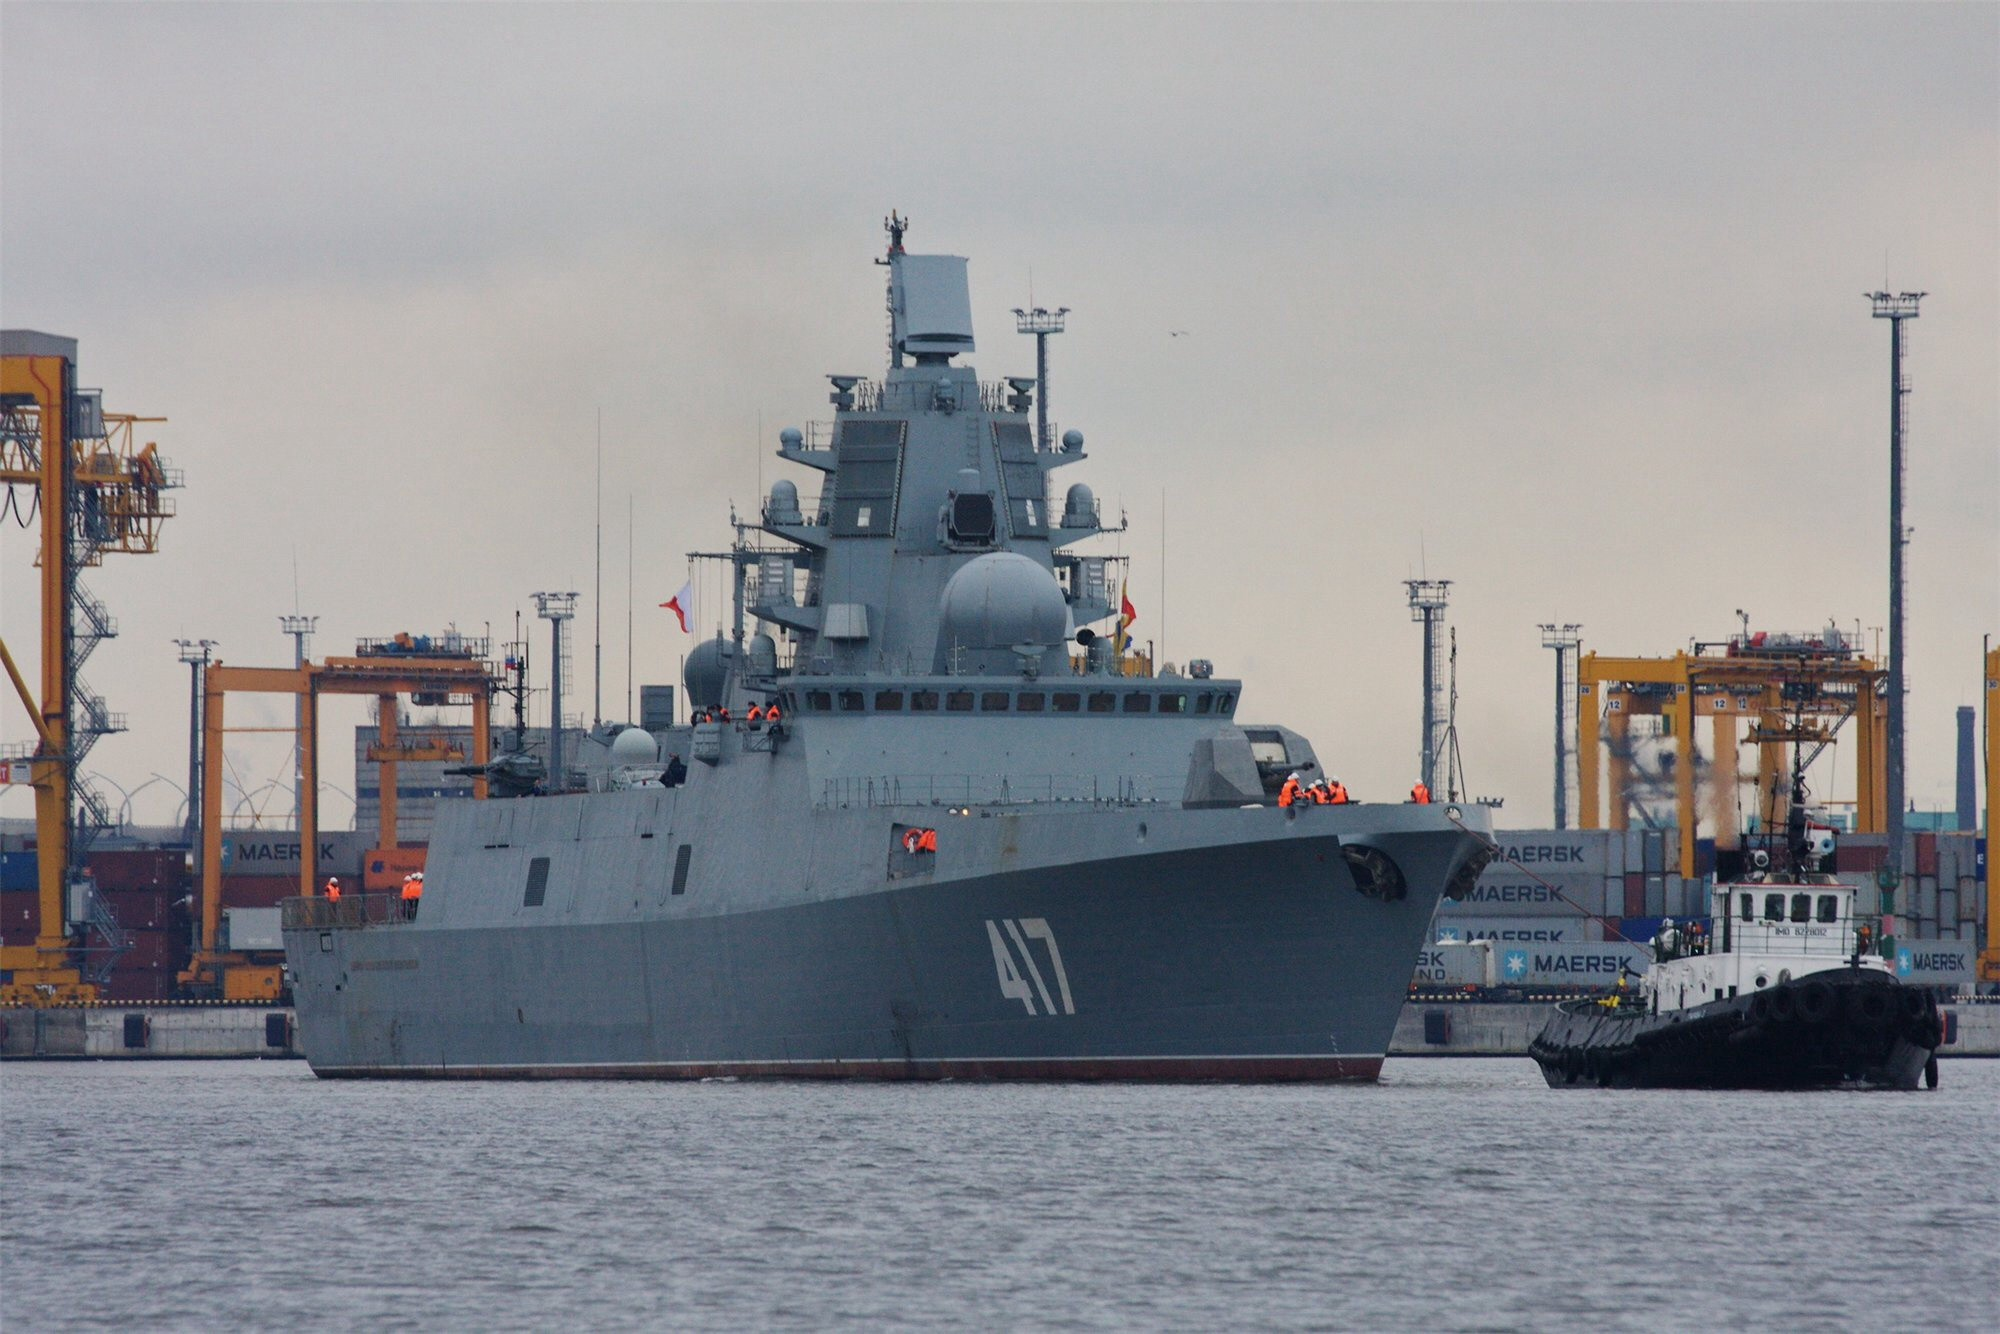 A Gorshkov-class guided missile frigate. Image credit: Jakarta Greater.